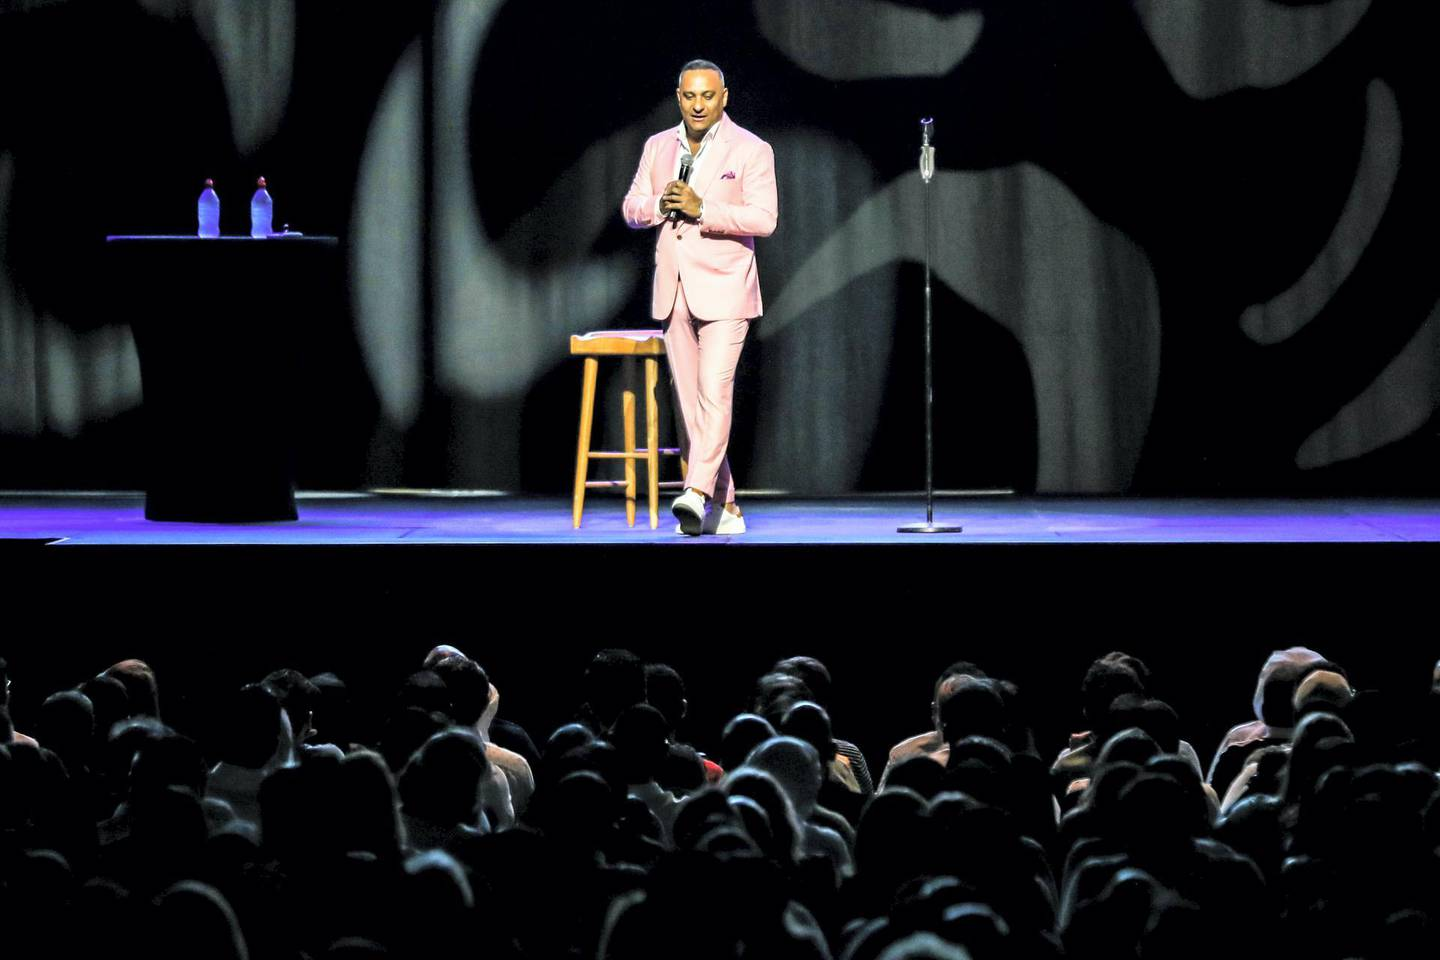 RUSSELL PETERS - THE DEPORTED WORLD TOUR at Dubai's Coca-Cola Arena. courtesy: Coca-Cola Arena.